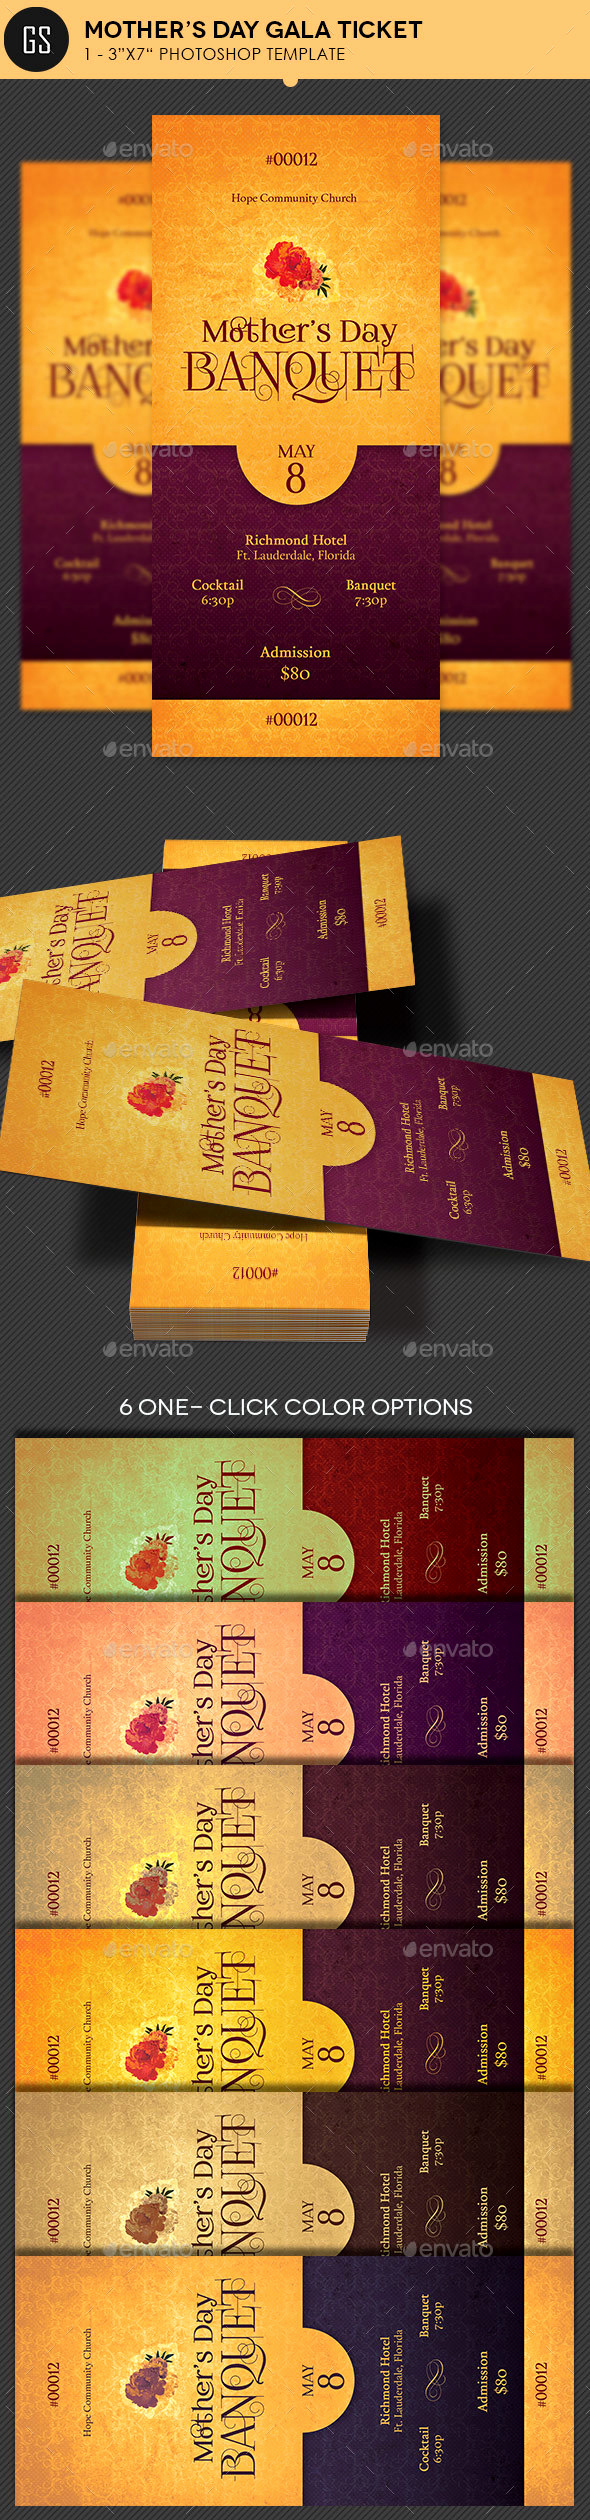 Mothers Day Menu Template Elegant Mothers Day Gala Ticket Shop Template by Godserv